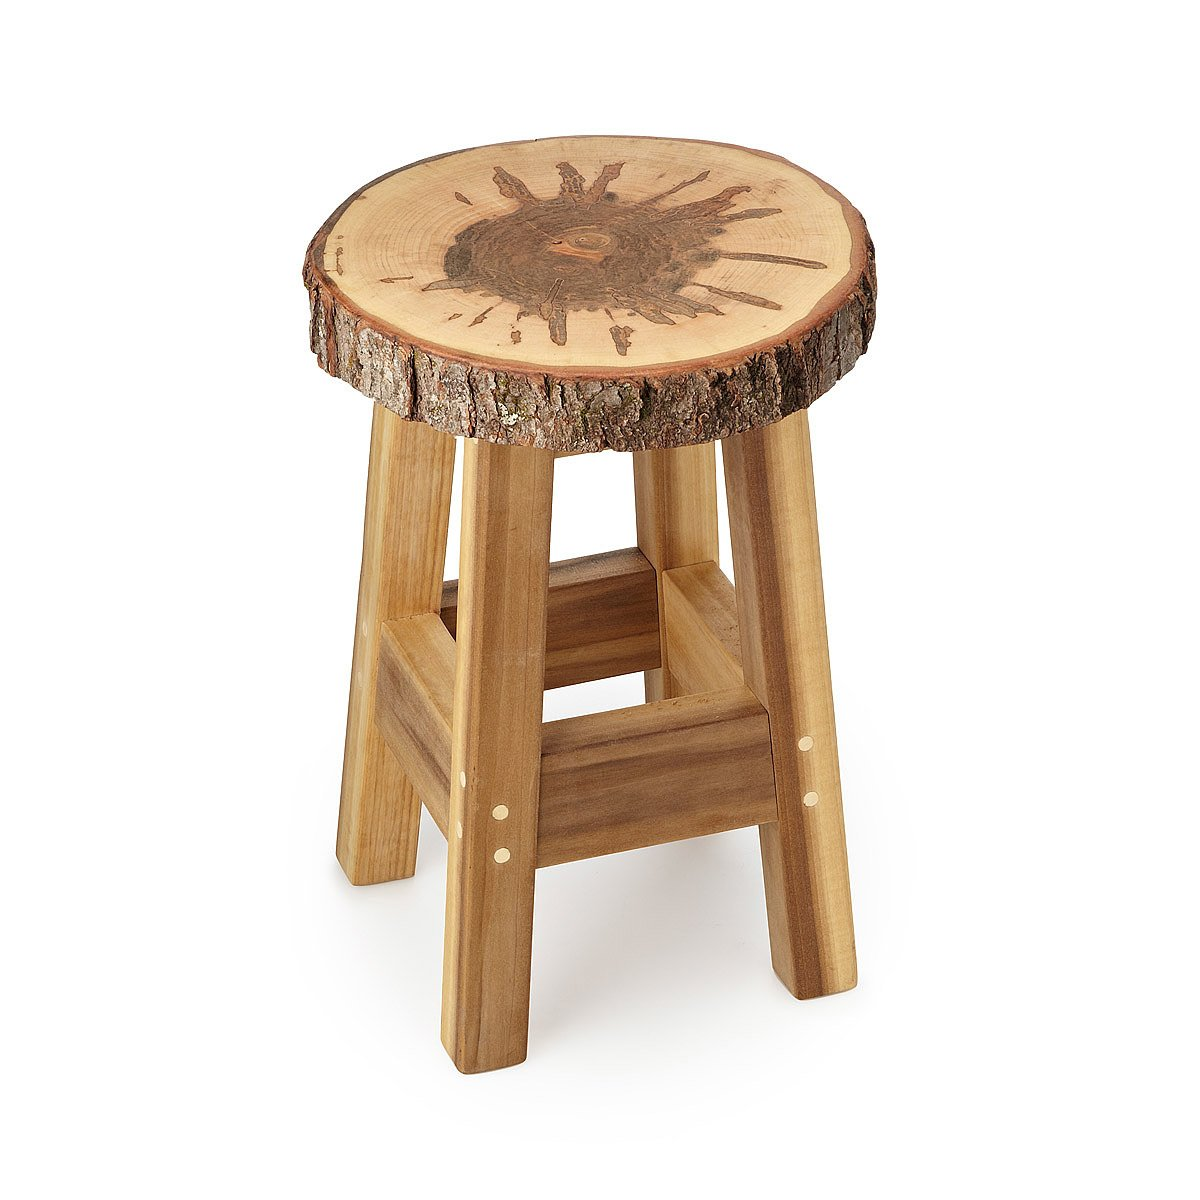 Live Edge Maple Stool 1 thumbnail  sc 1 st  UncommonGoods : handmade wooden stools - islam-shia.org